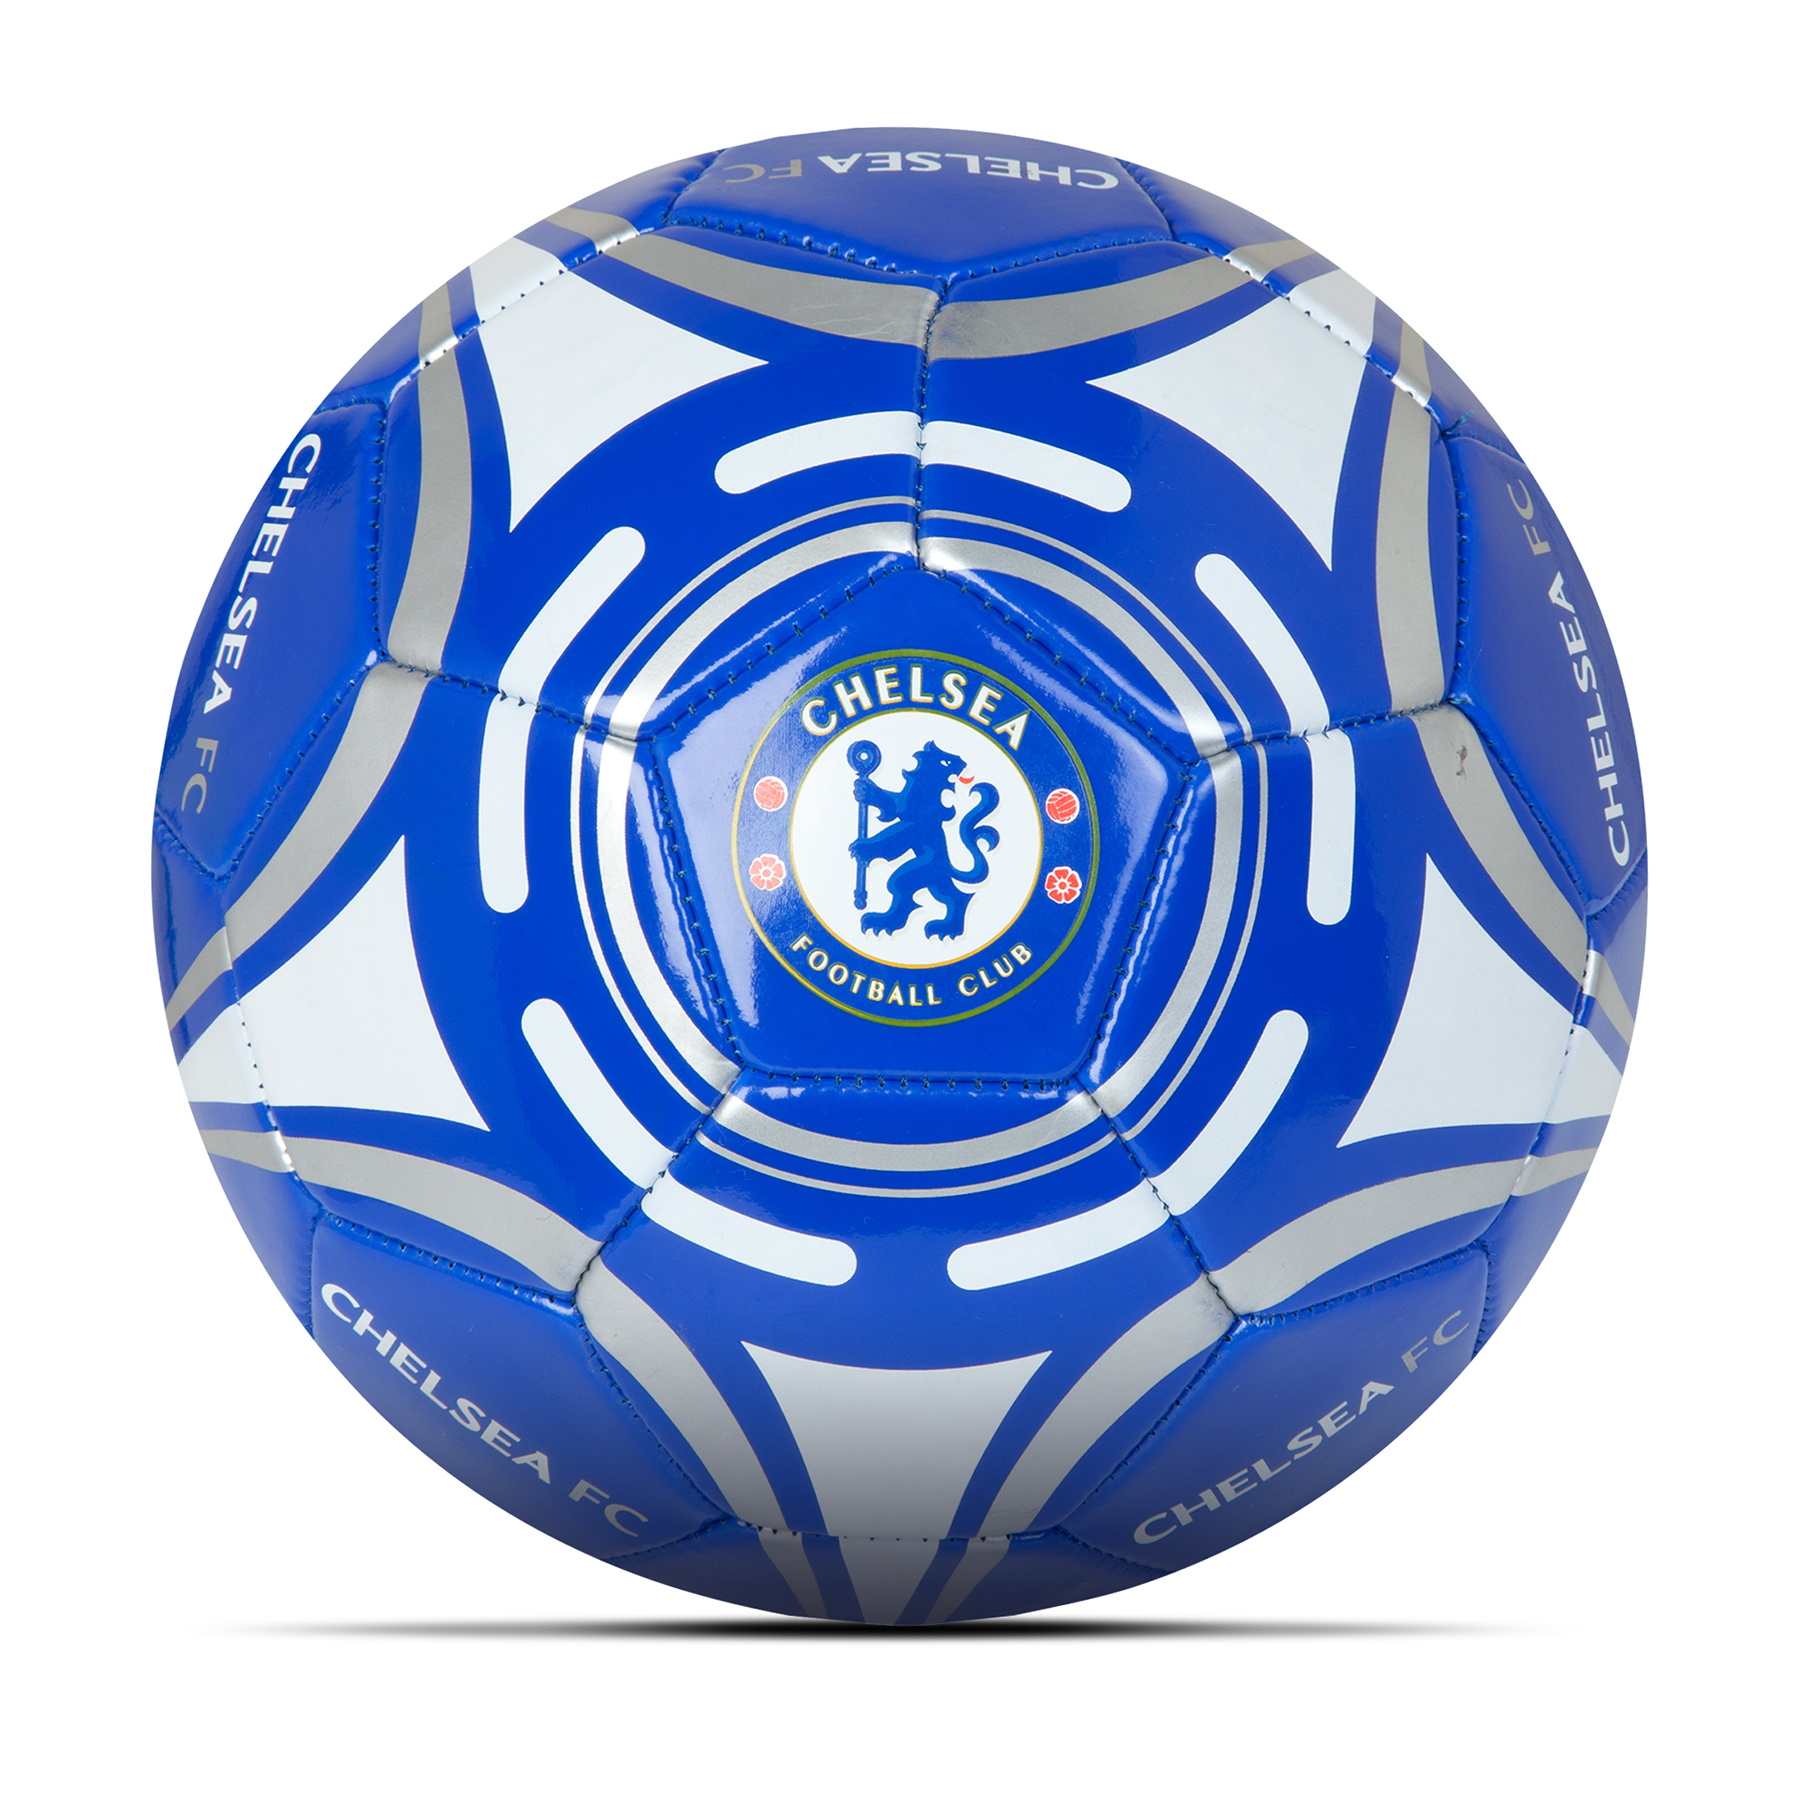 Chelsea Star Football - Blue - Size 5